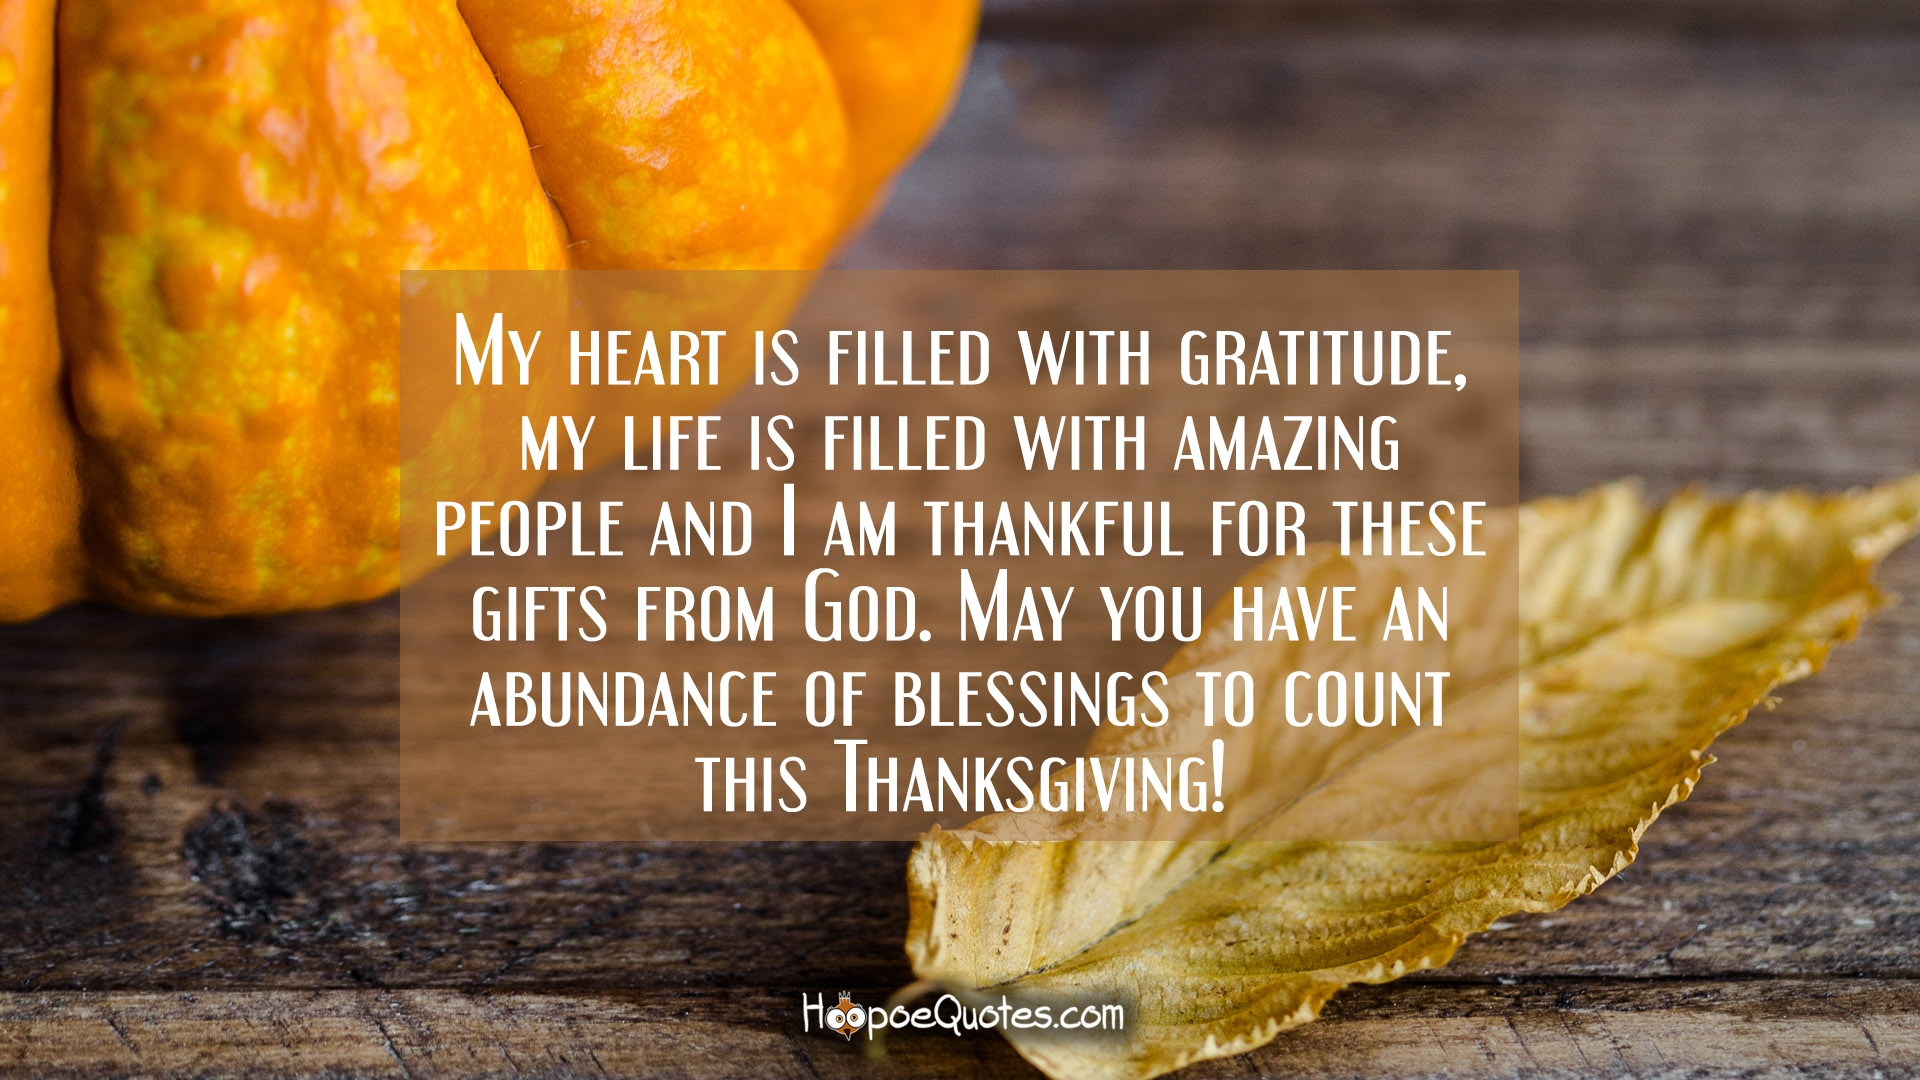 Thanksgiving Messages Hoopoequotes